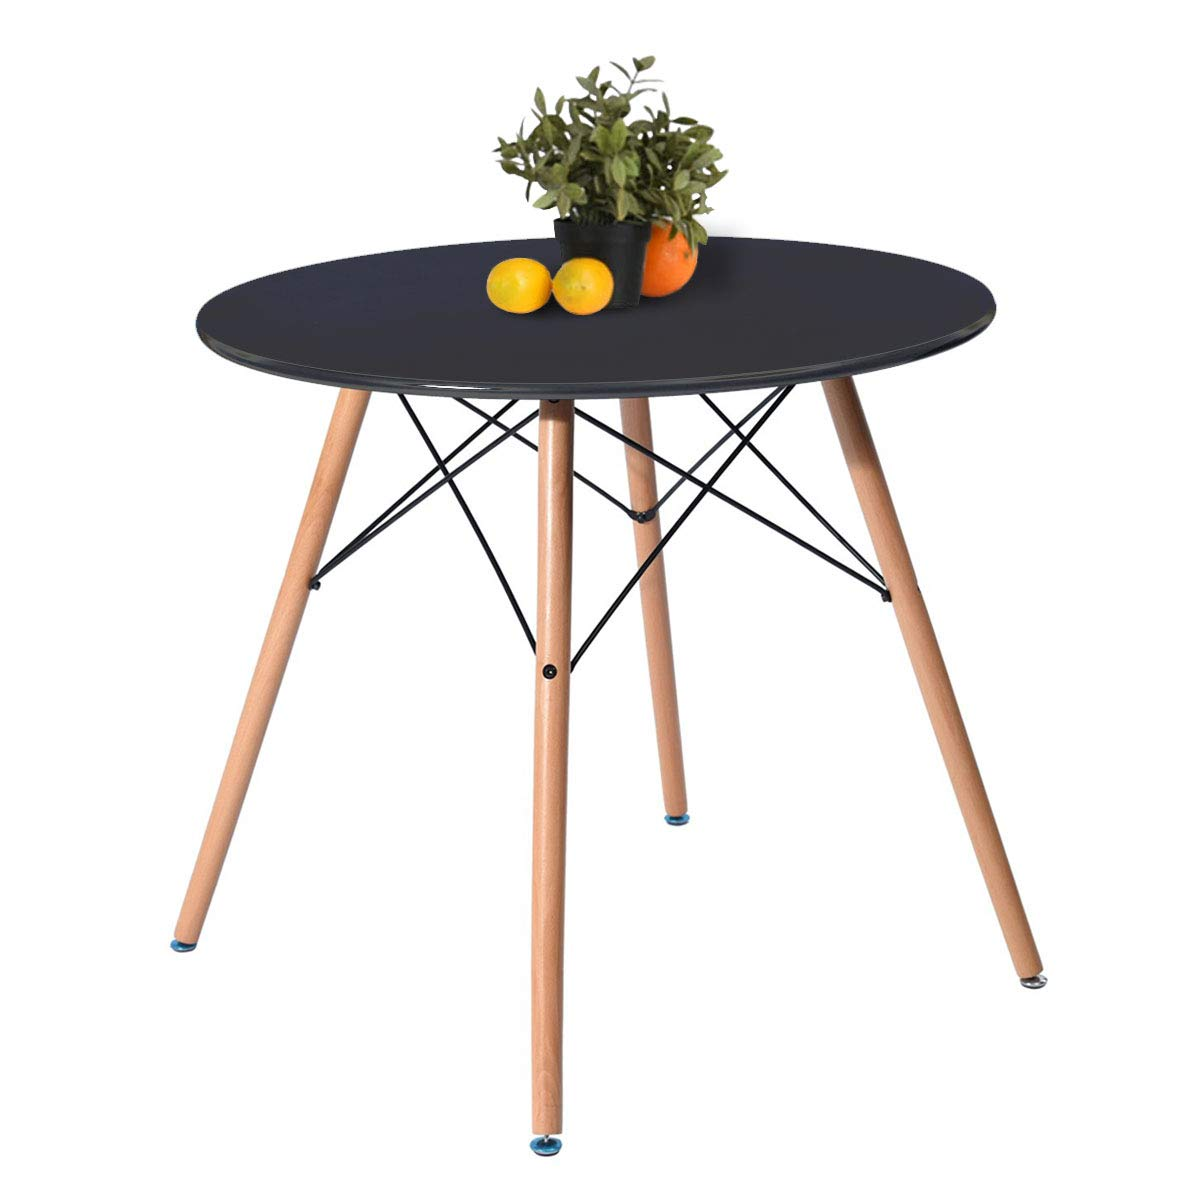 Kitchen Dining Table Round Coffee Table Black Collection Modern Leisure Wood Tea Table Office Conference Pedestal Desk by Coavas